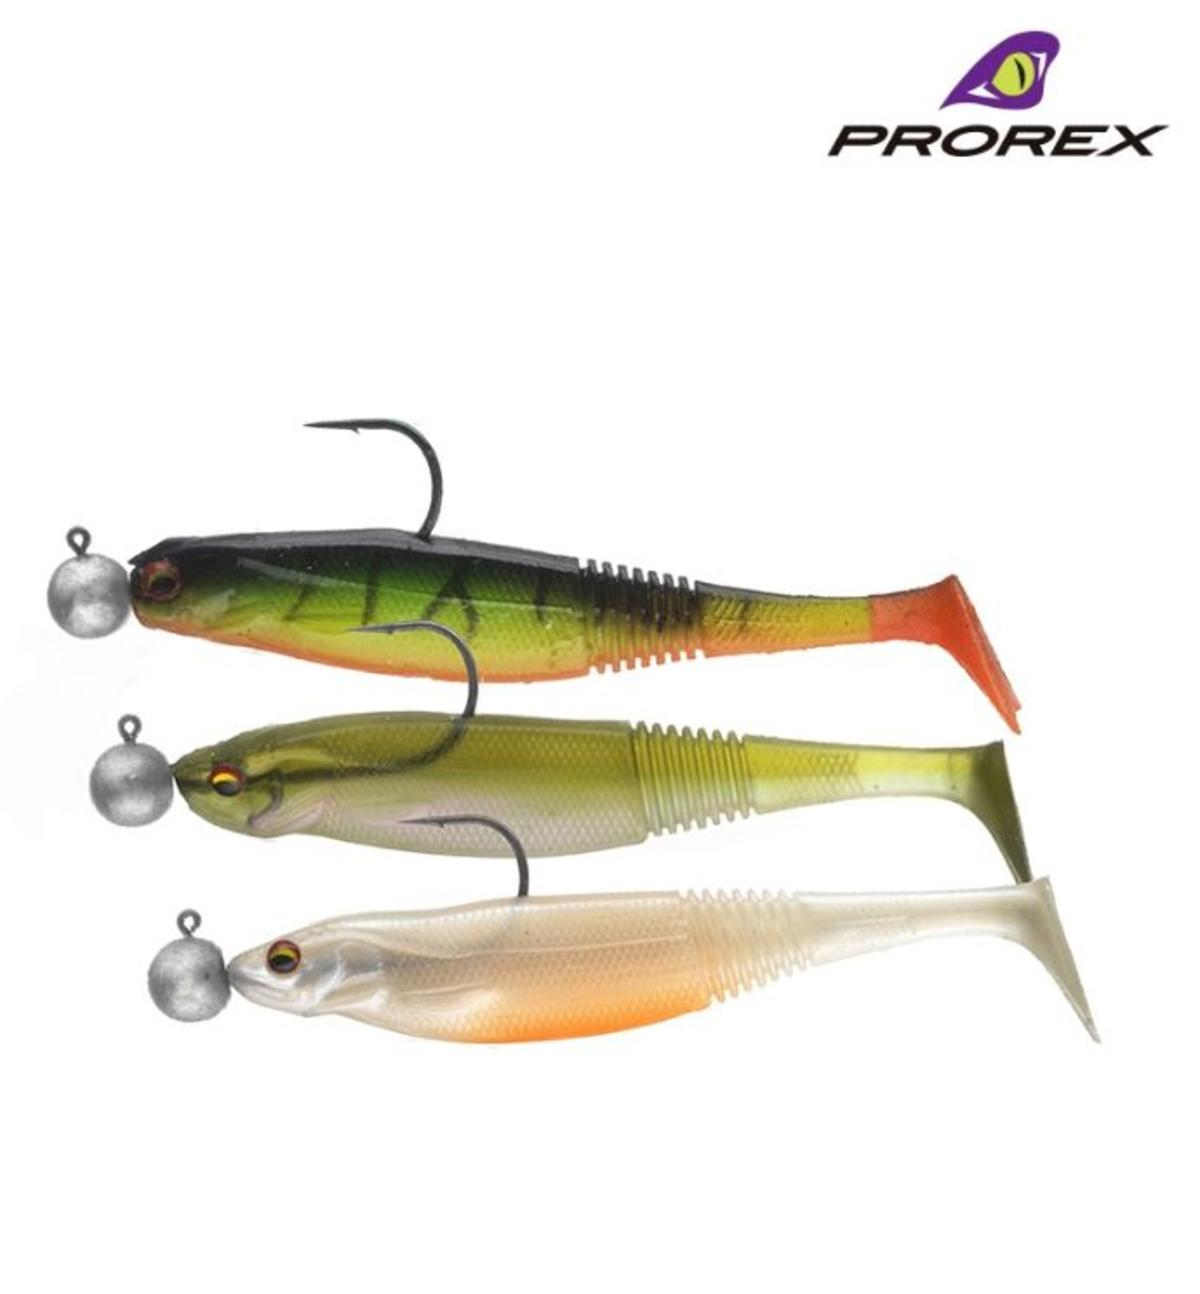 New Daiwa Prorex Classic Shad DF Pre-Rigged Zander / Perch Lures - Kit 2